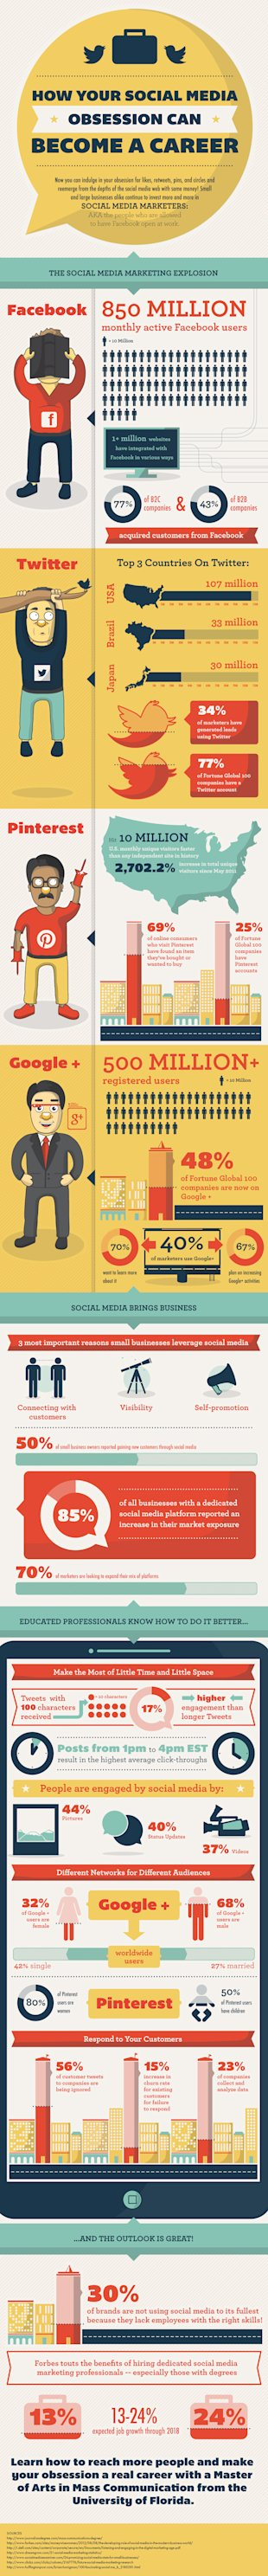 How Your Social Media Obsession Can Become A Career [Infographic] image SocialMediaObsession